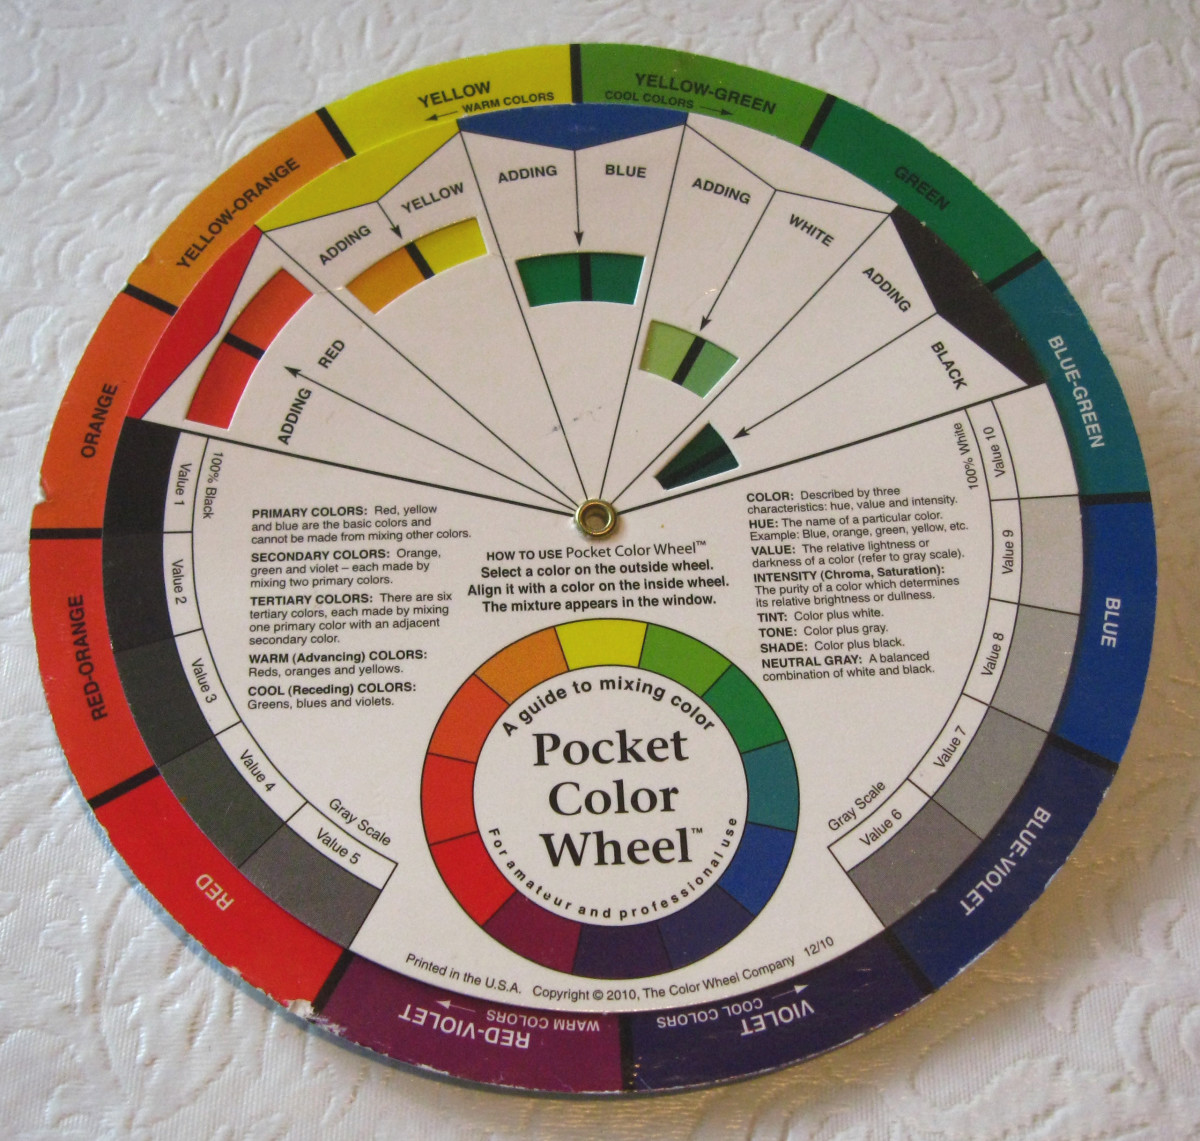 Front of the color wheel